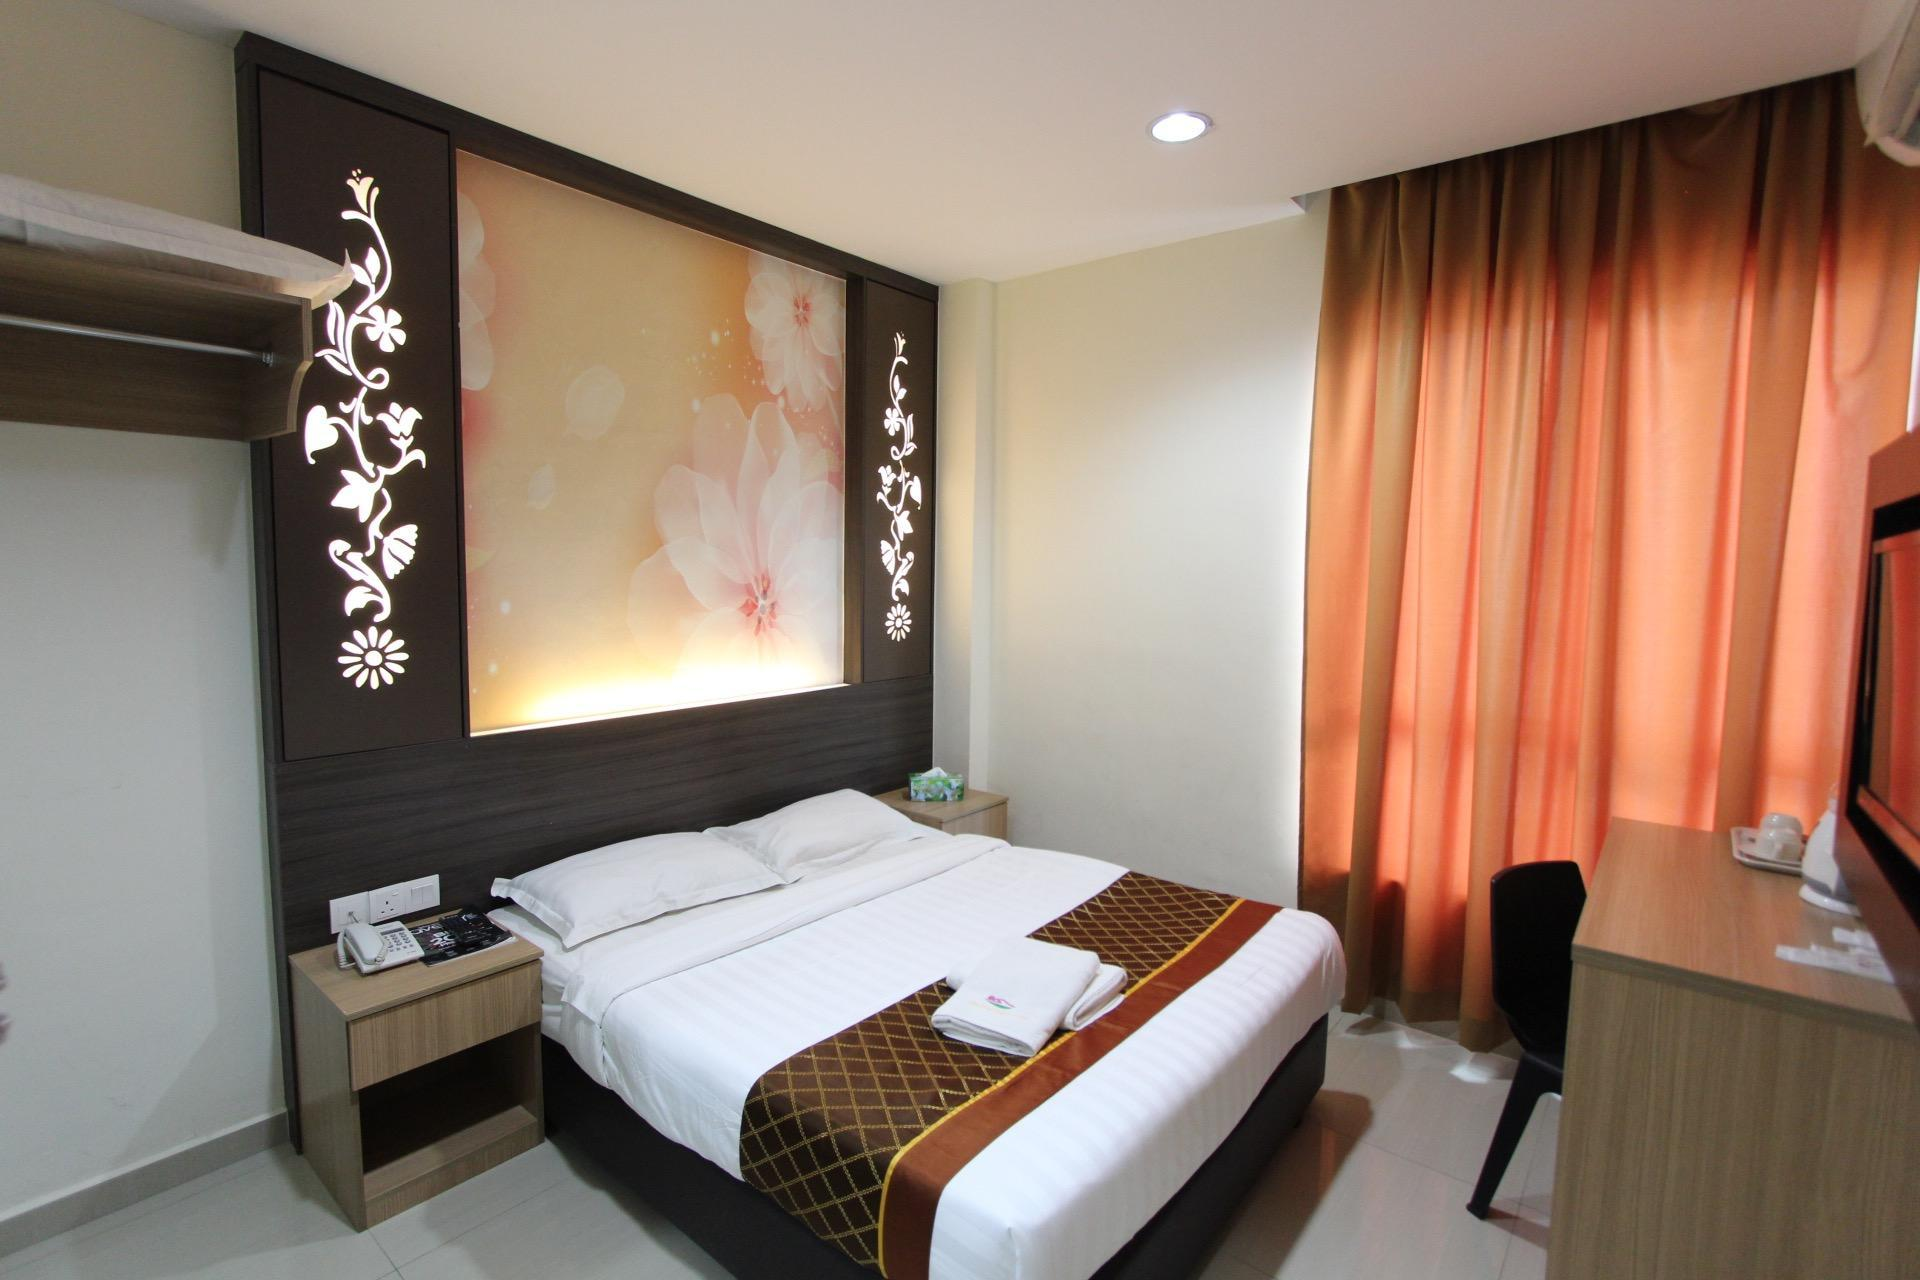 D And F Boutique Hotel